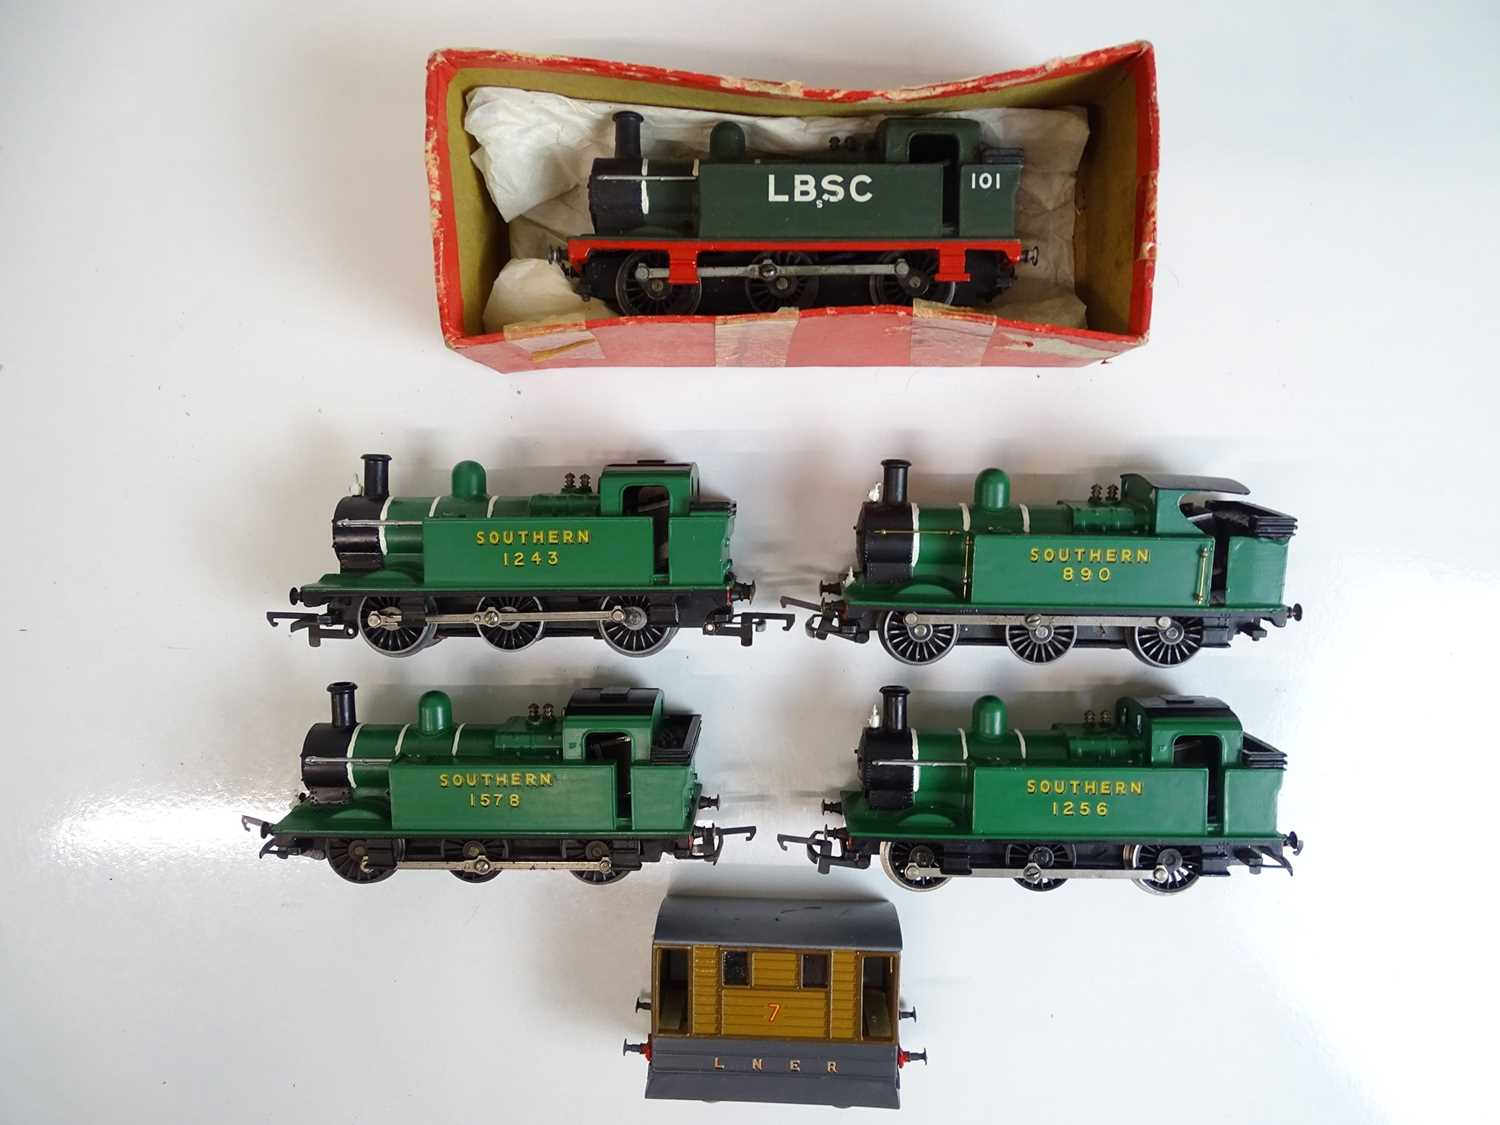 A group of TRI-ANG / HORNBY OO Gauge locomotives mostly repainted together with an LNER tram loco (